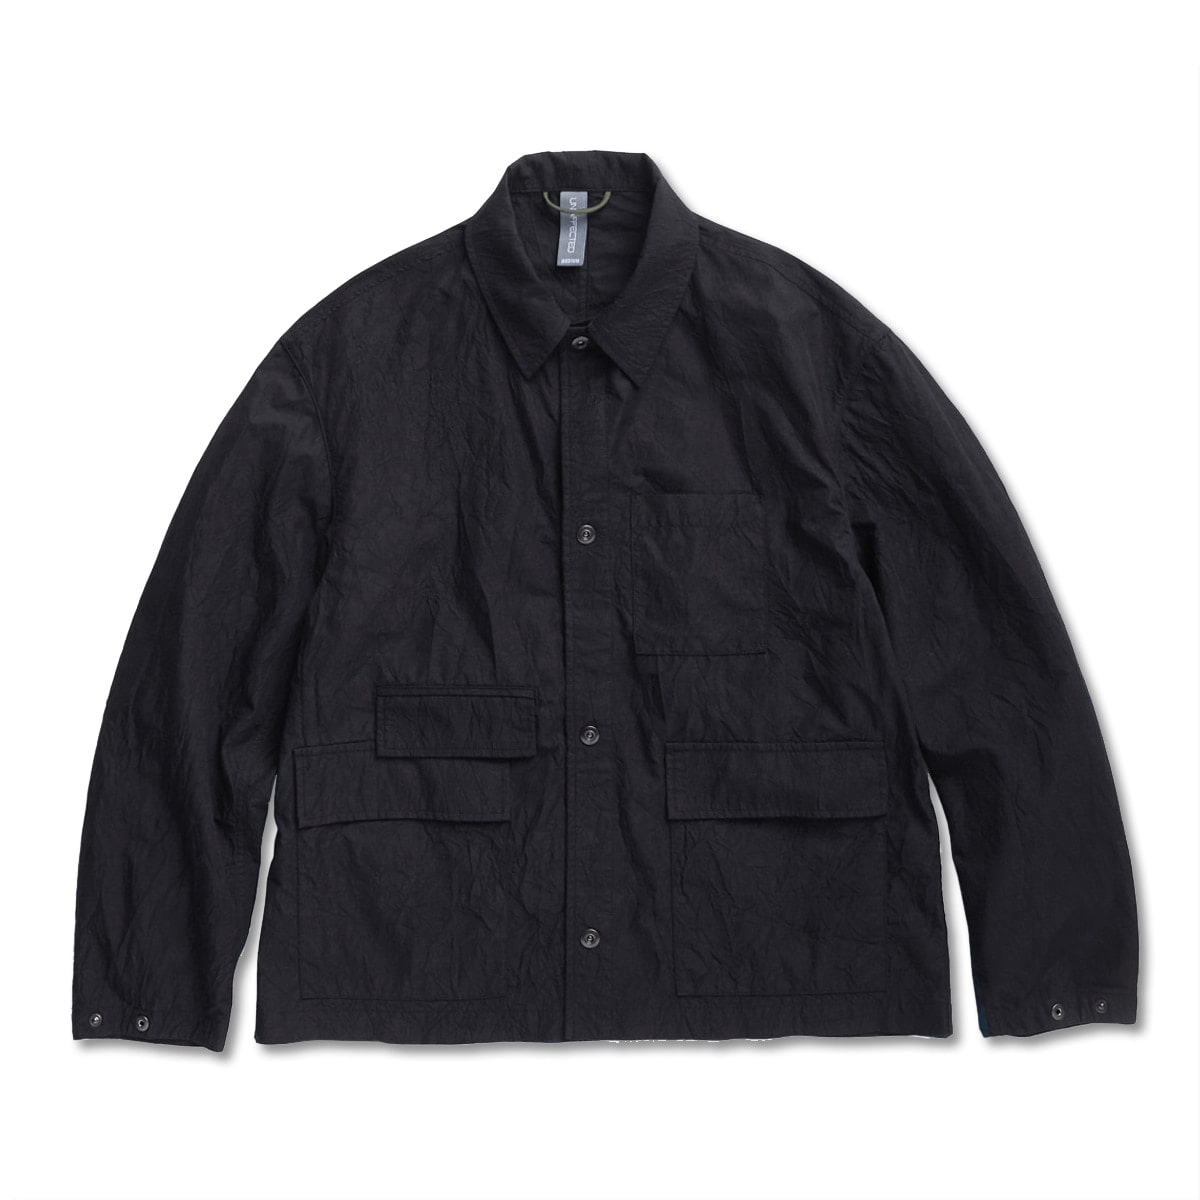 [UNAFFECTED] CHORE JACKET 'BLACK'